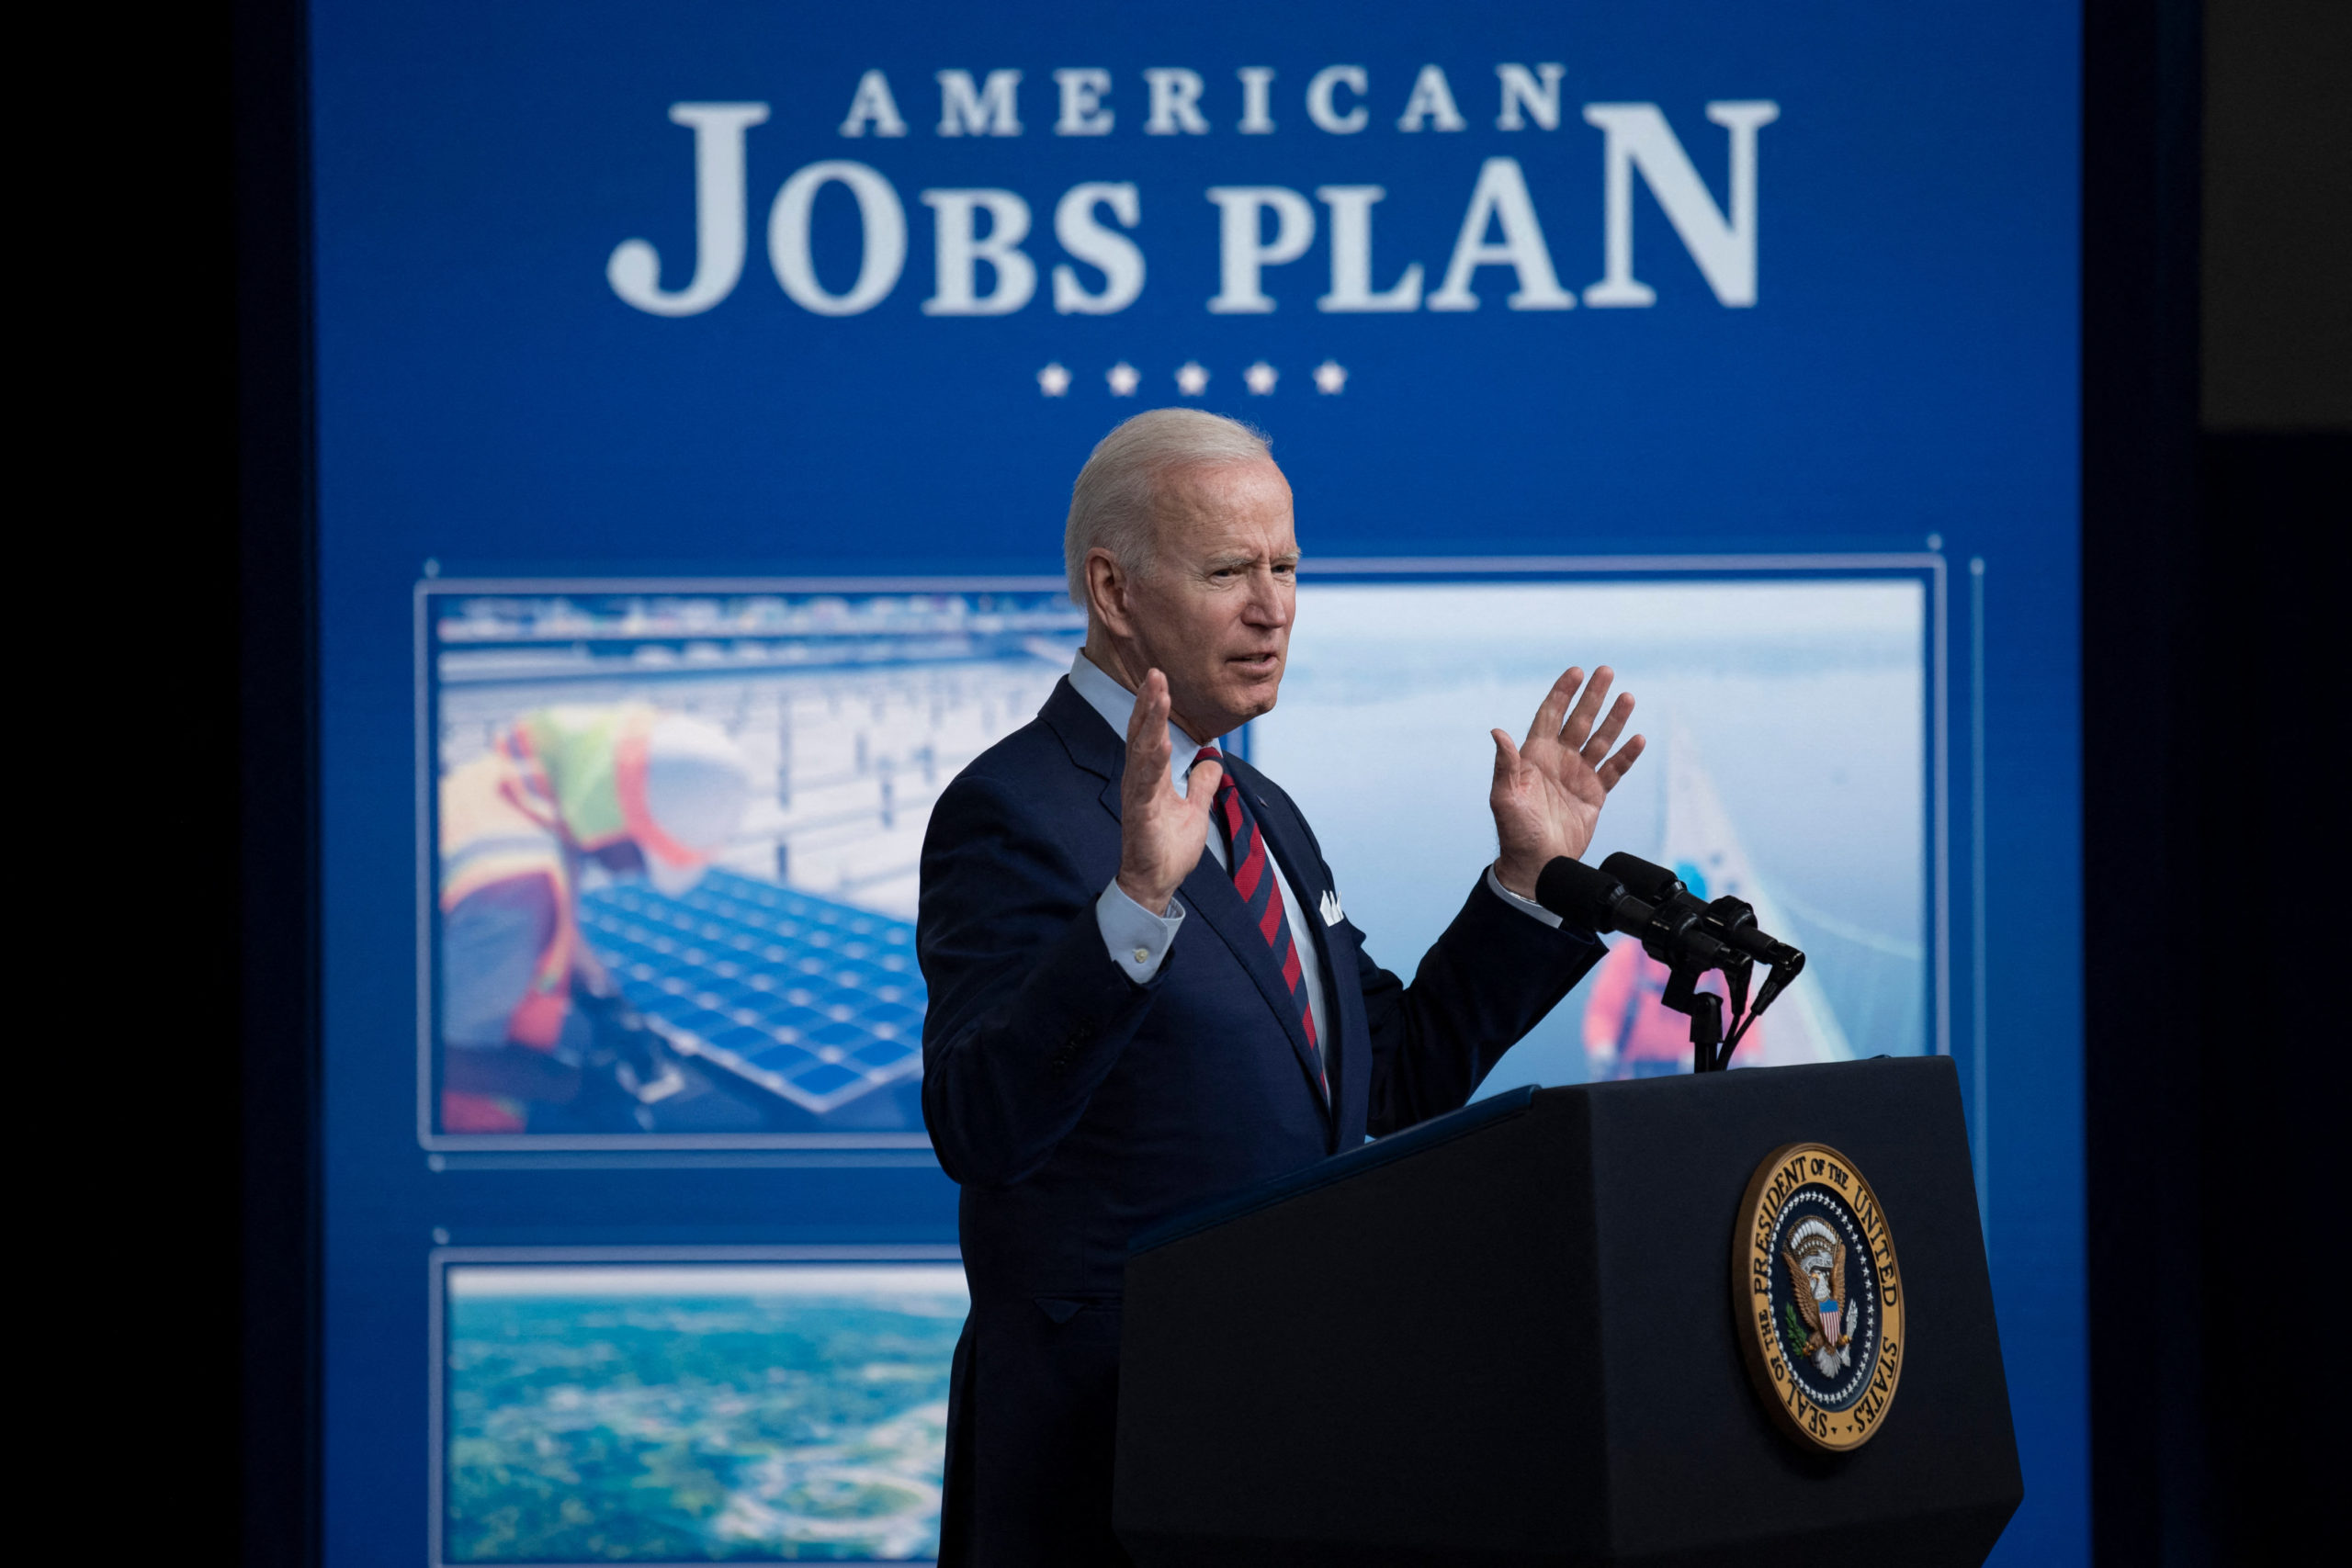 President Biden has urged Congress to pass his $2 trillion infrastructure plan to ensure US global leadership in the face of China's rising power. (Brendan Smialowski/AFP via Getty Images)